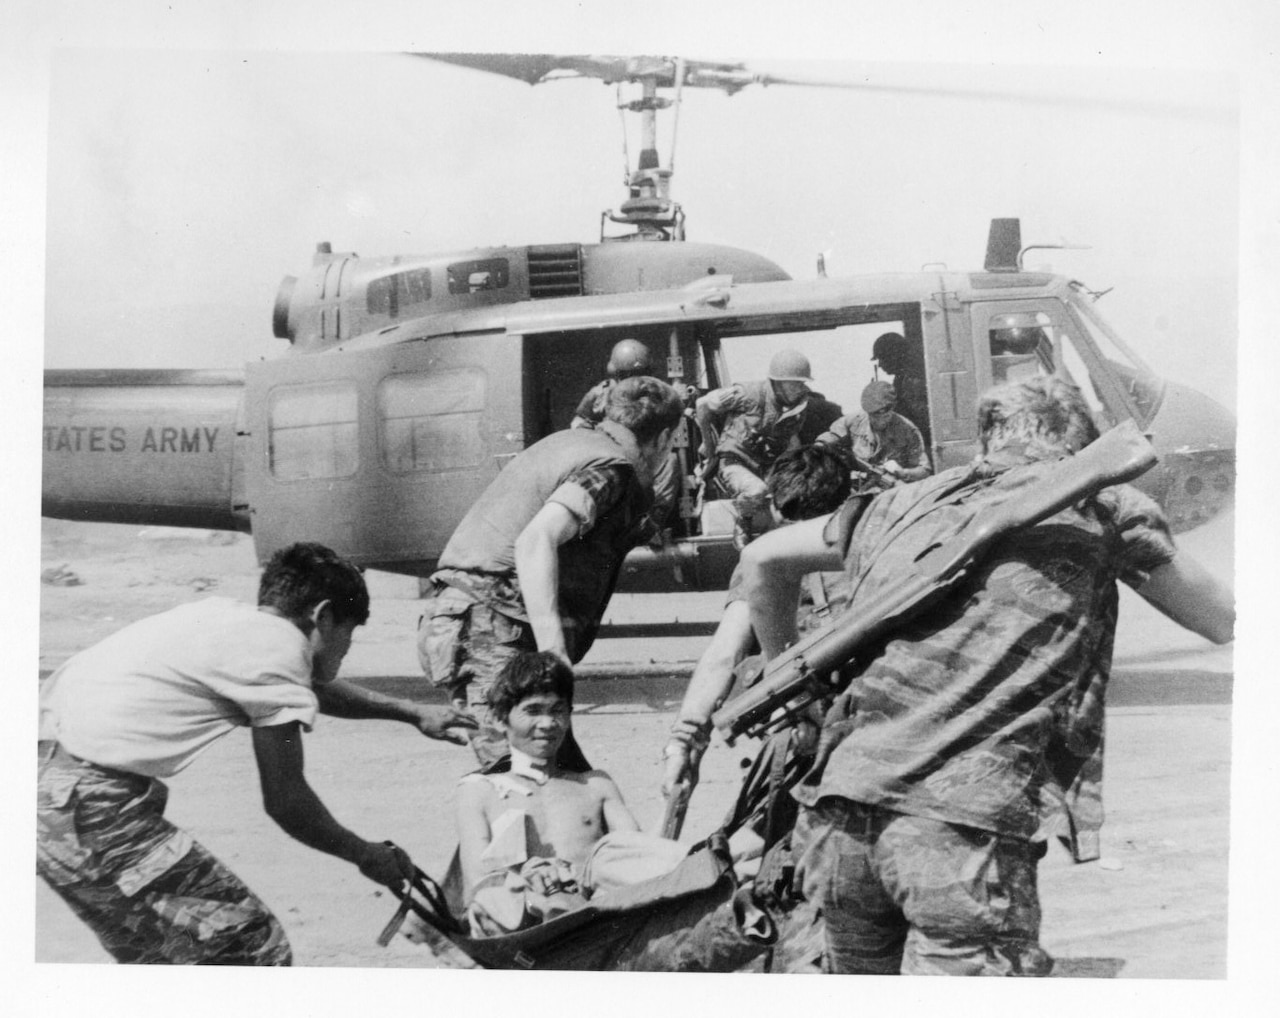 Soldiers carry a shirtless man on a stretcher to a helicopter.